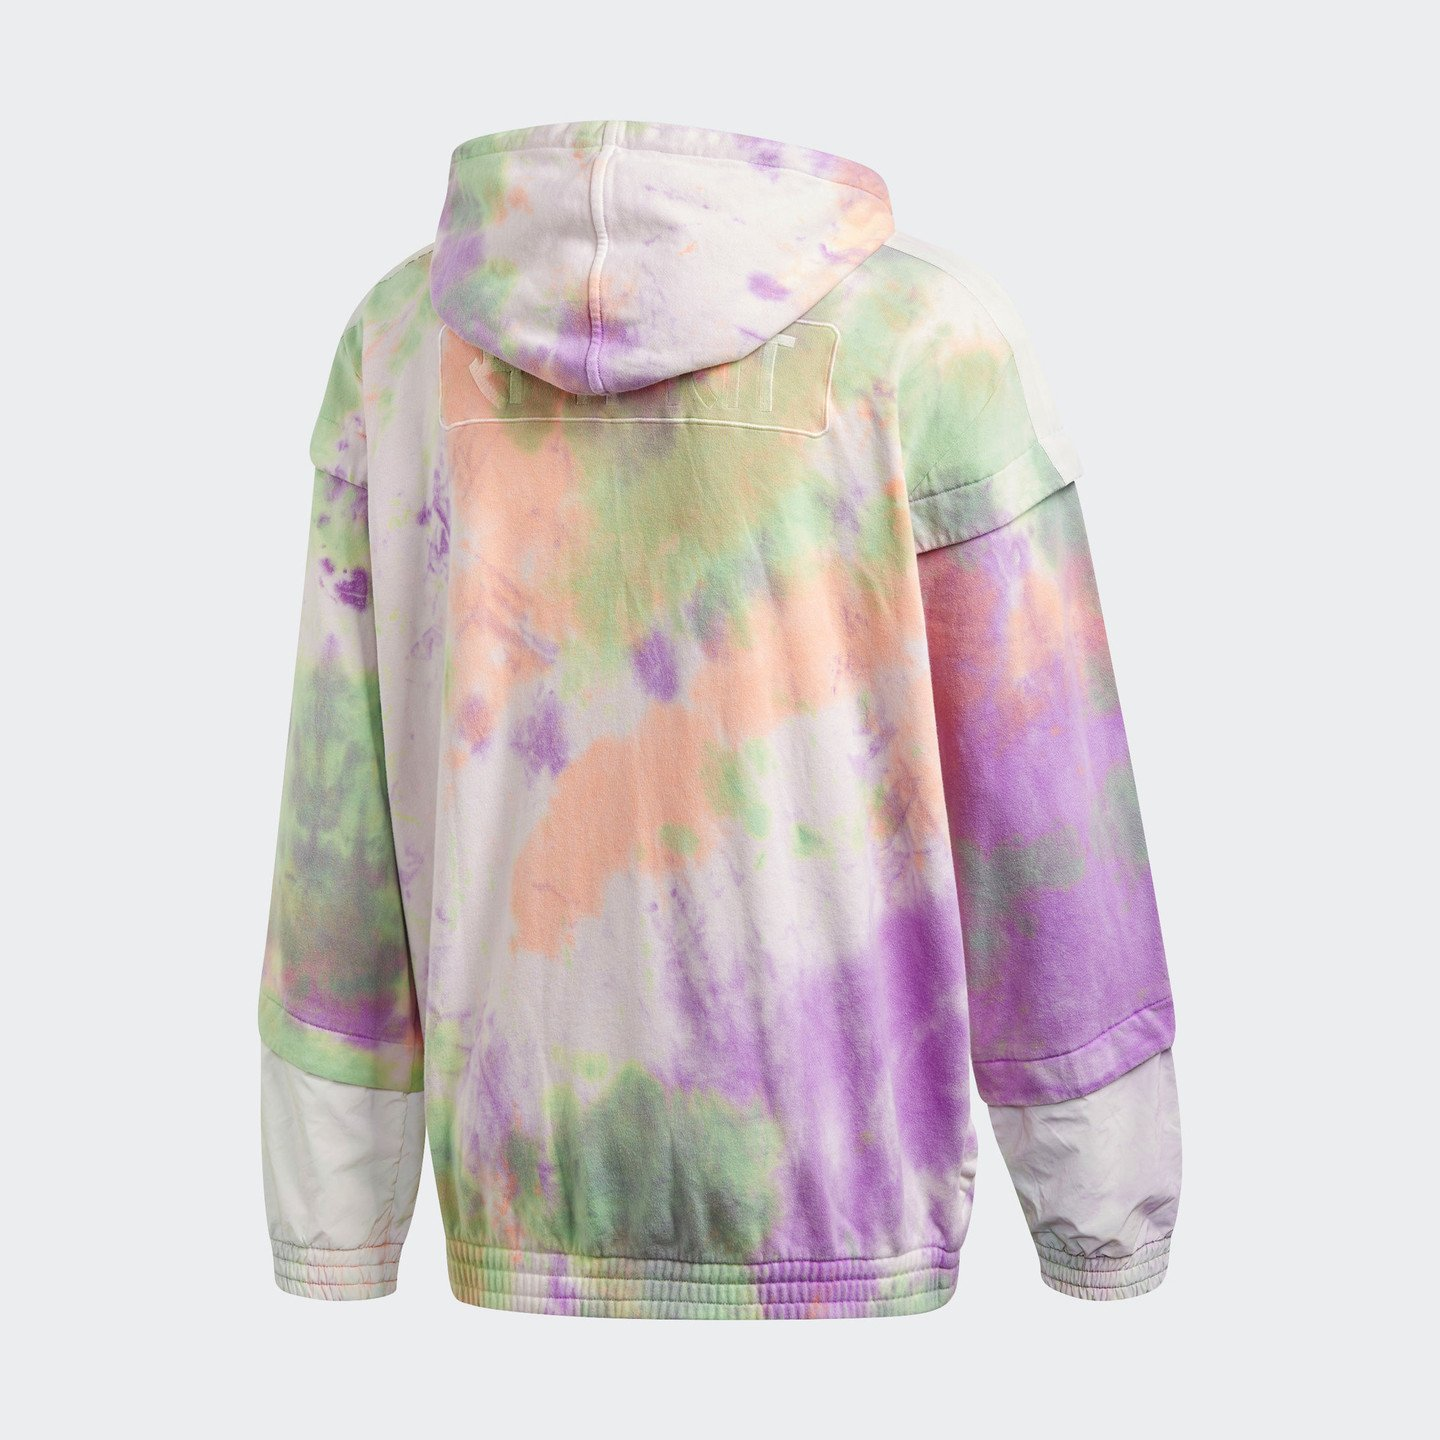 Adidas Pharrell Williams HU Holi Zipped Hoodie 'Powder Dye' Multicolor / White CW9413